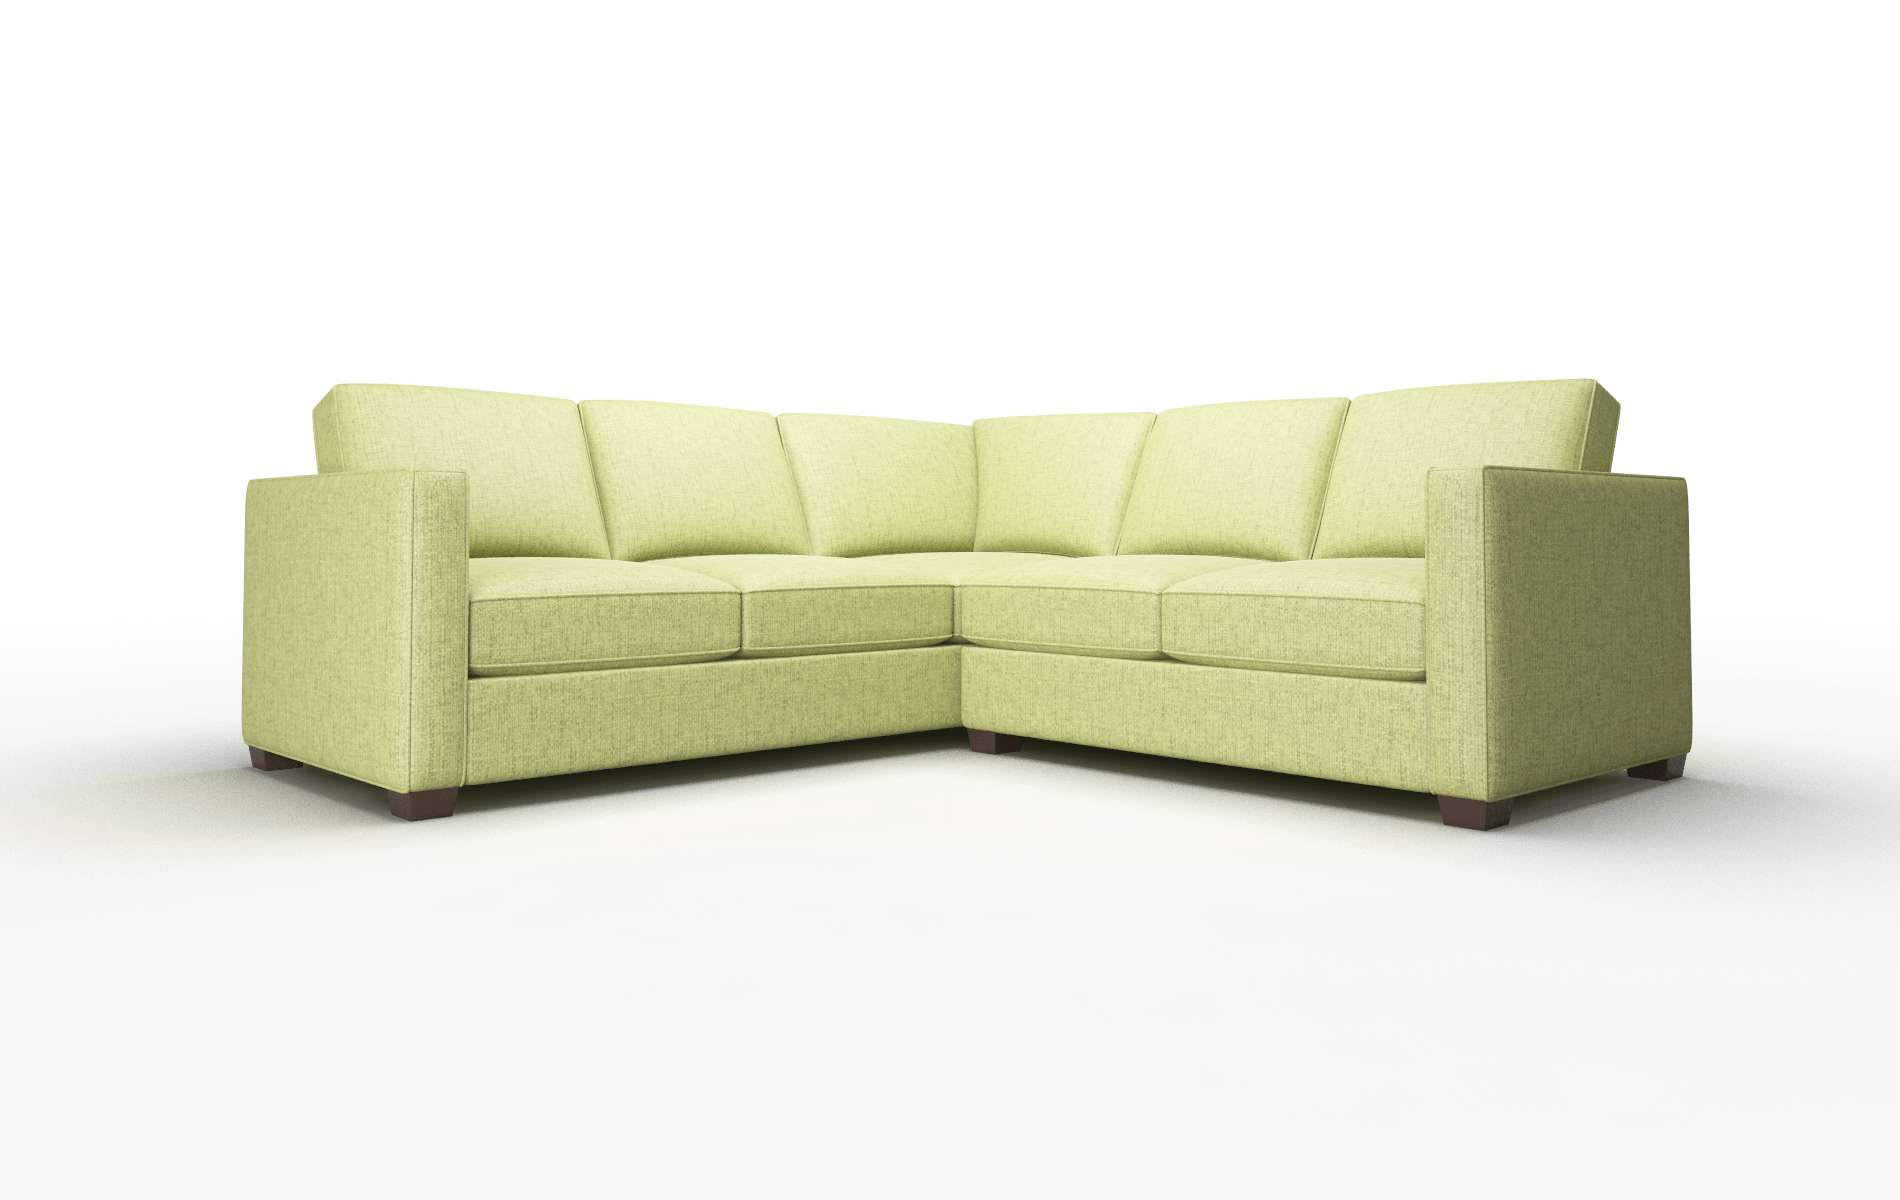 Calgary Notion Appletini Sectional espresso legs 1